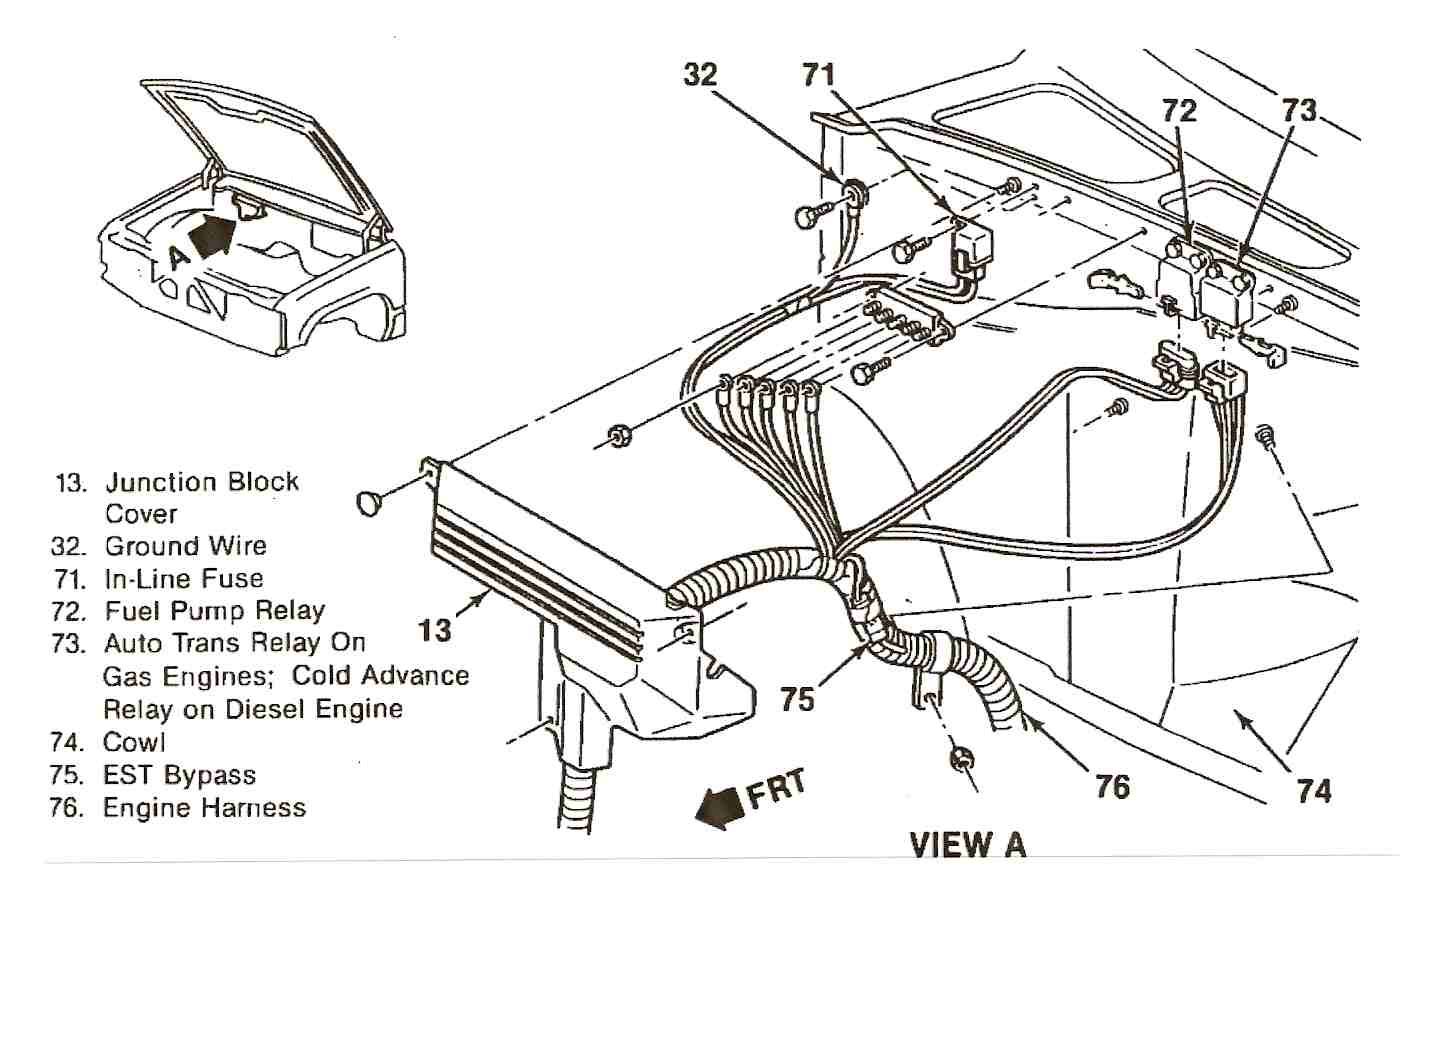 87 Chevy V10 Wiring Diagram